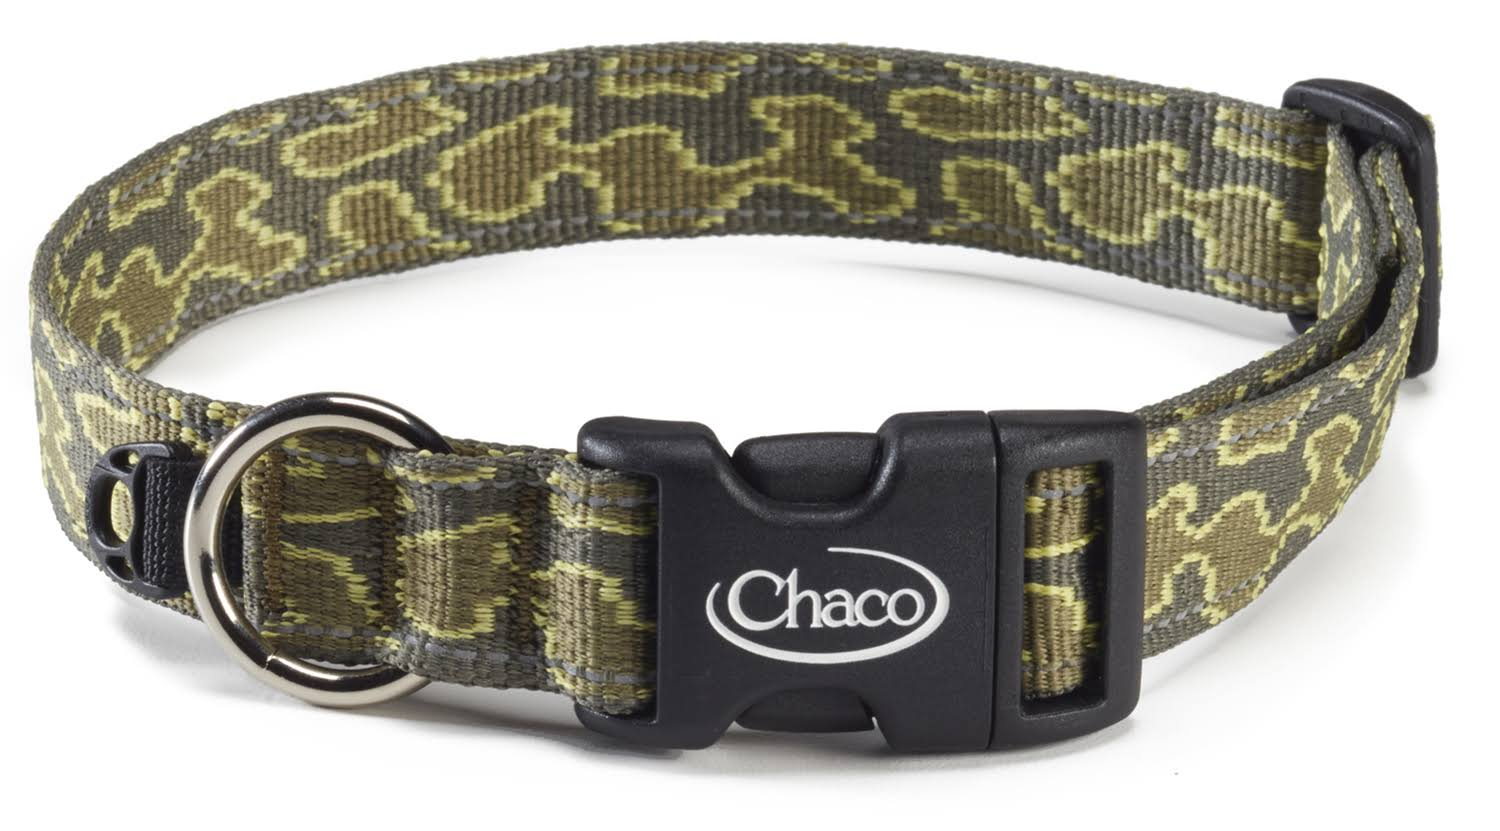 Chaco - Dog Collar - Mosey Hunter